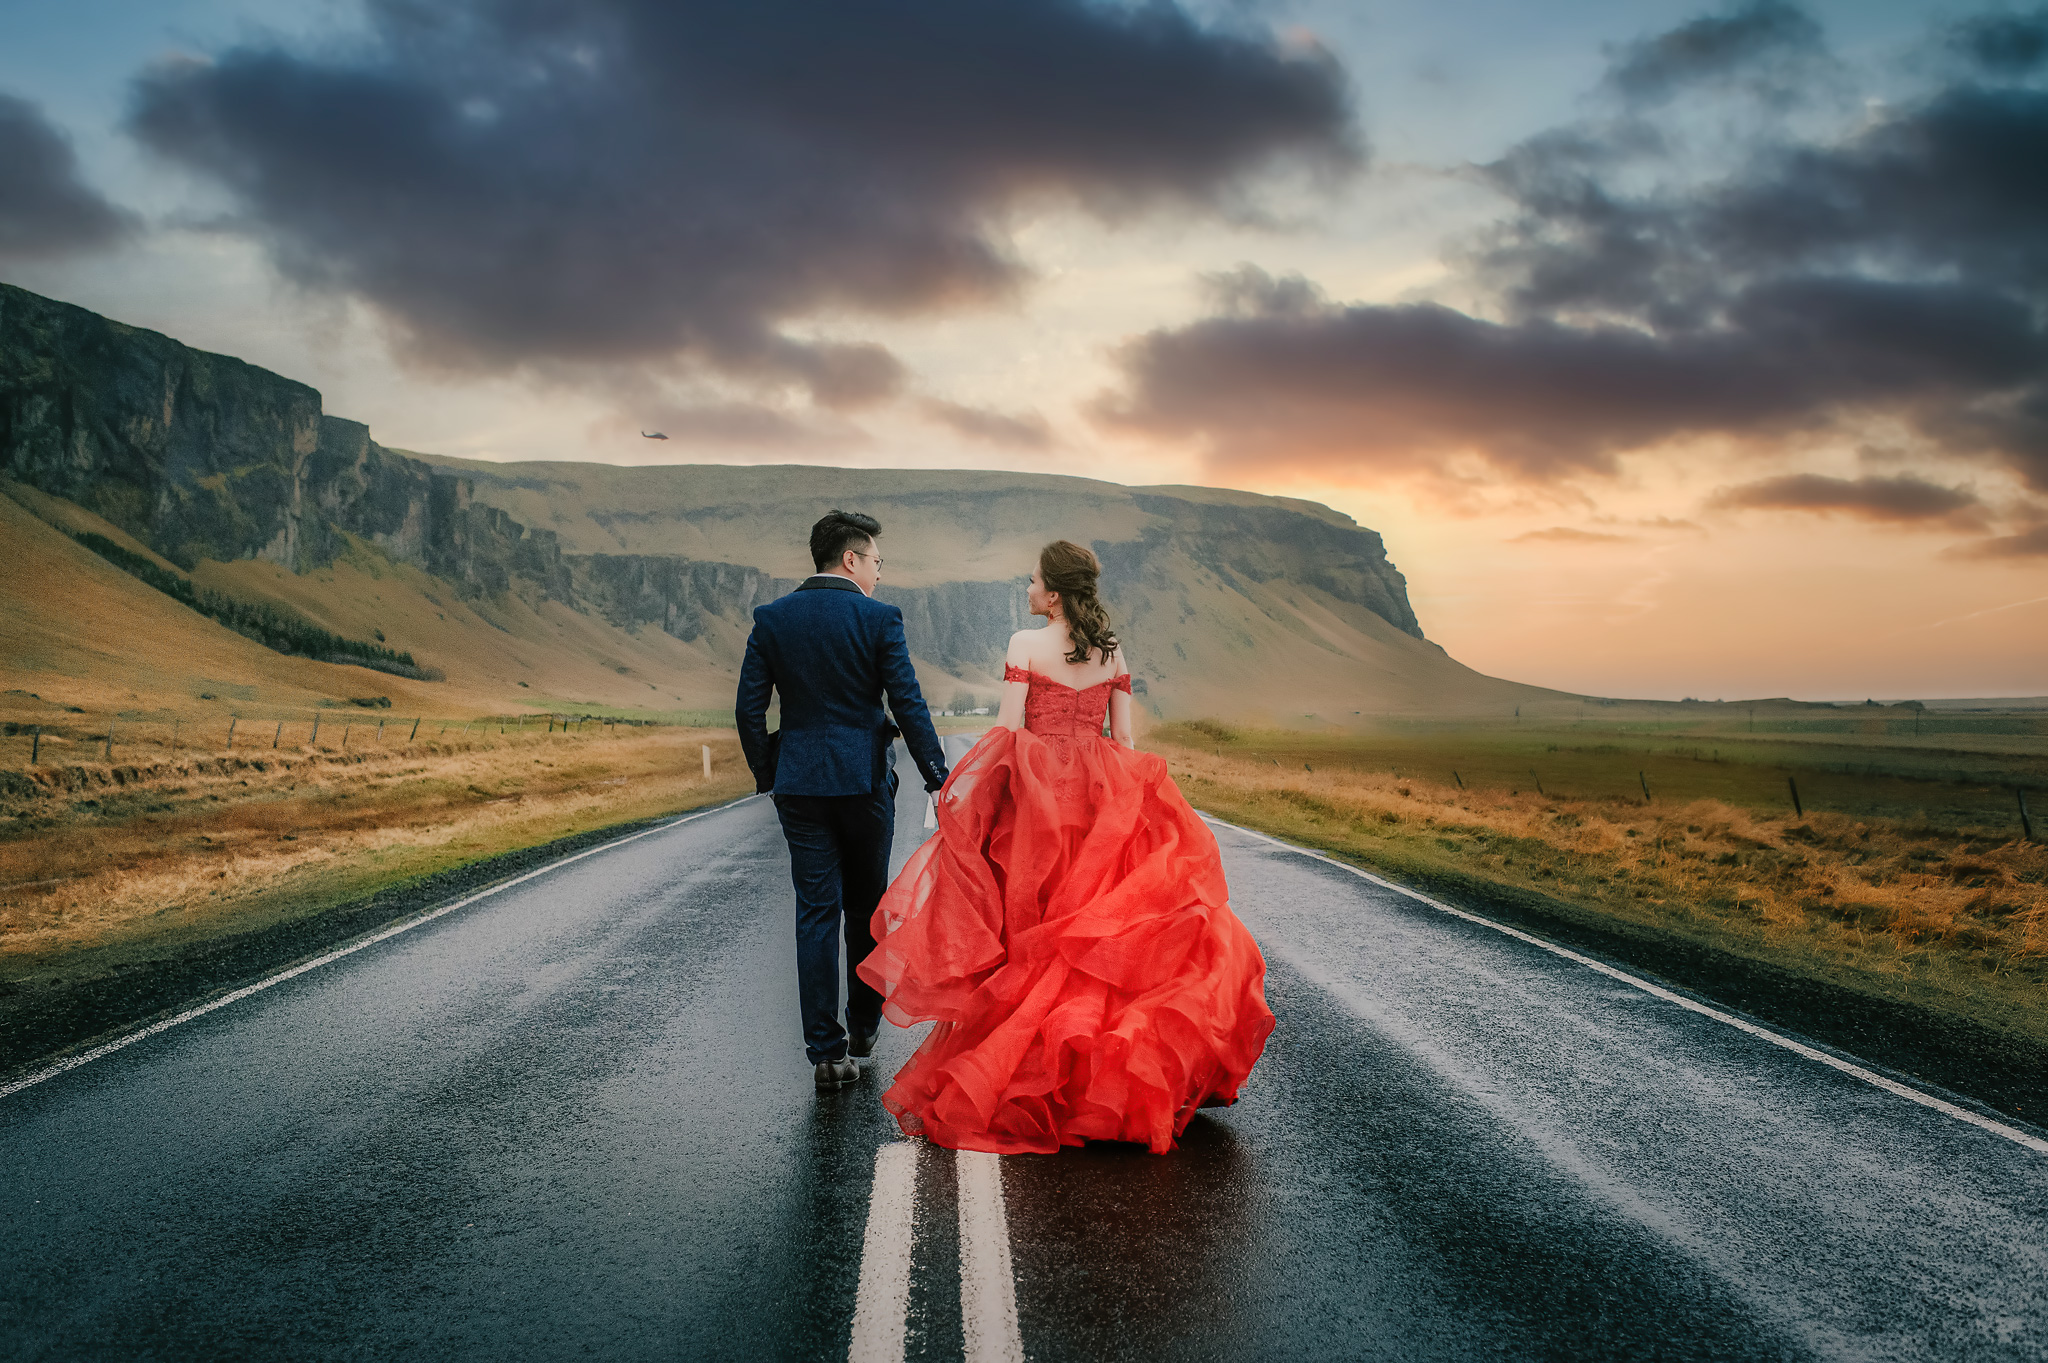 Bride in red gown and groom walking down countryside - photo by Edwin Tan Photography